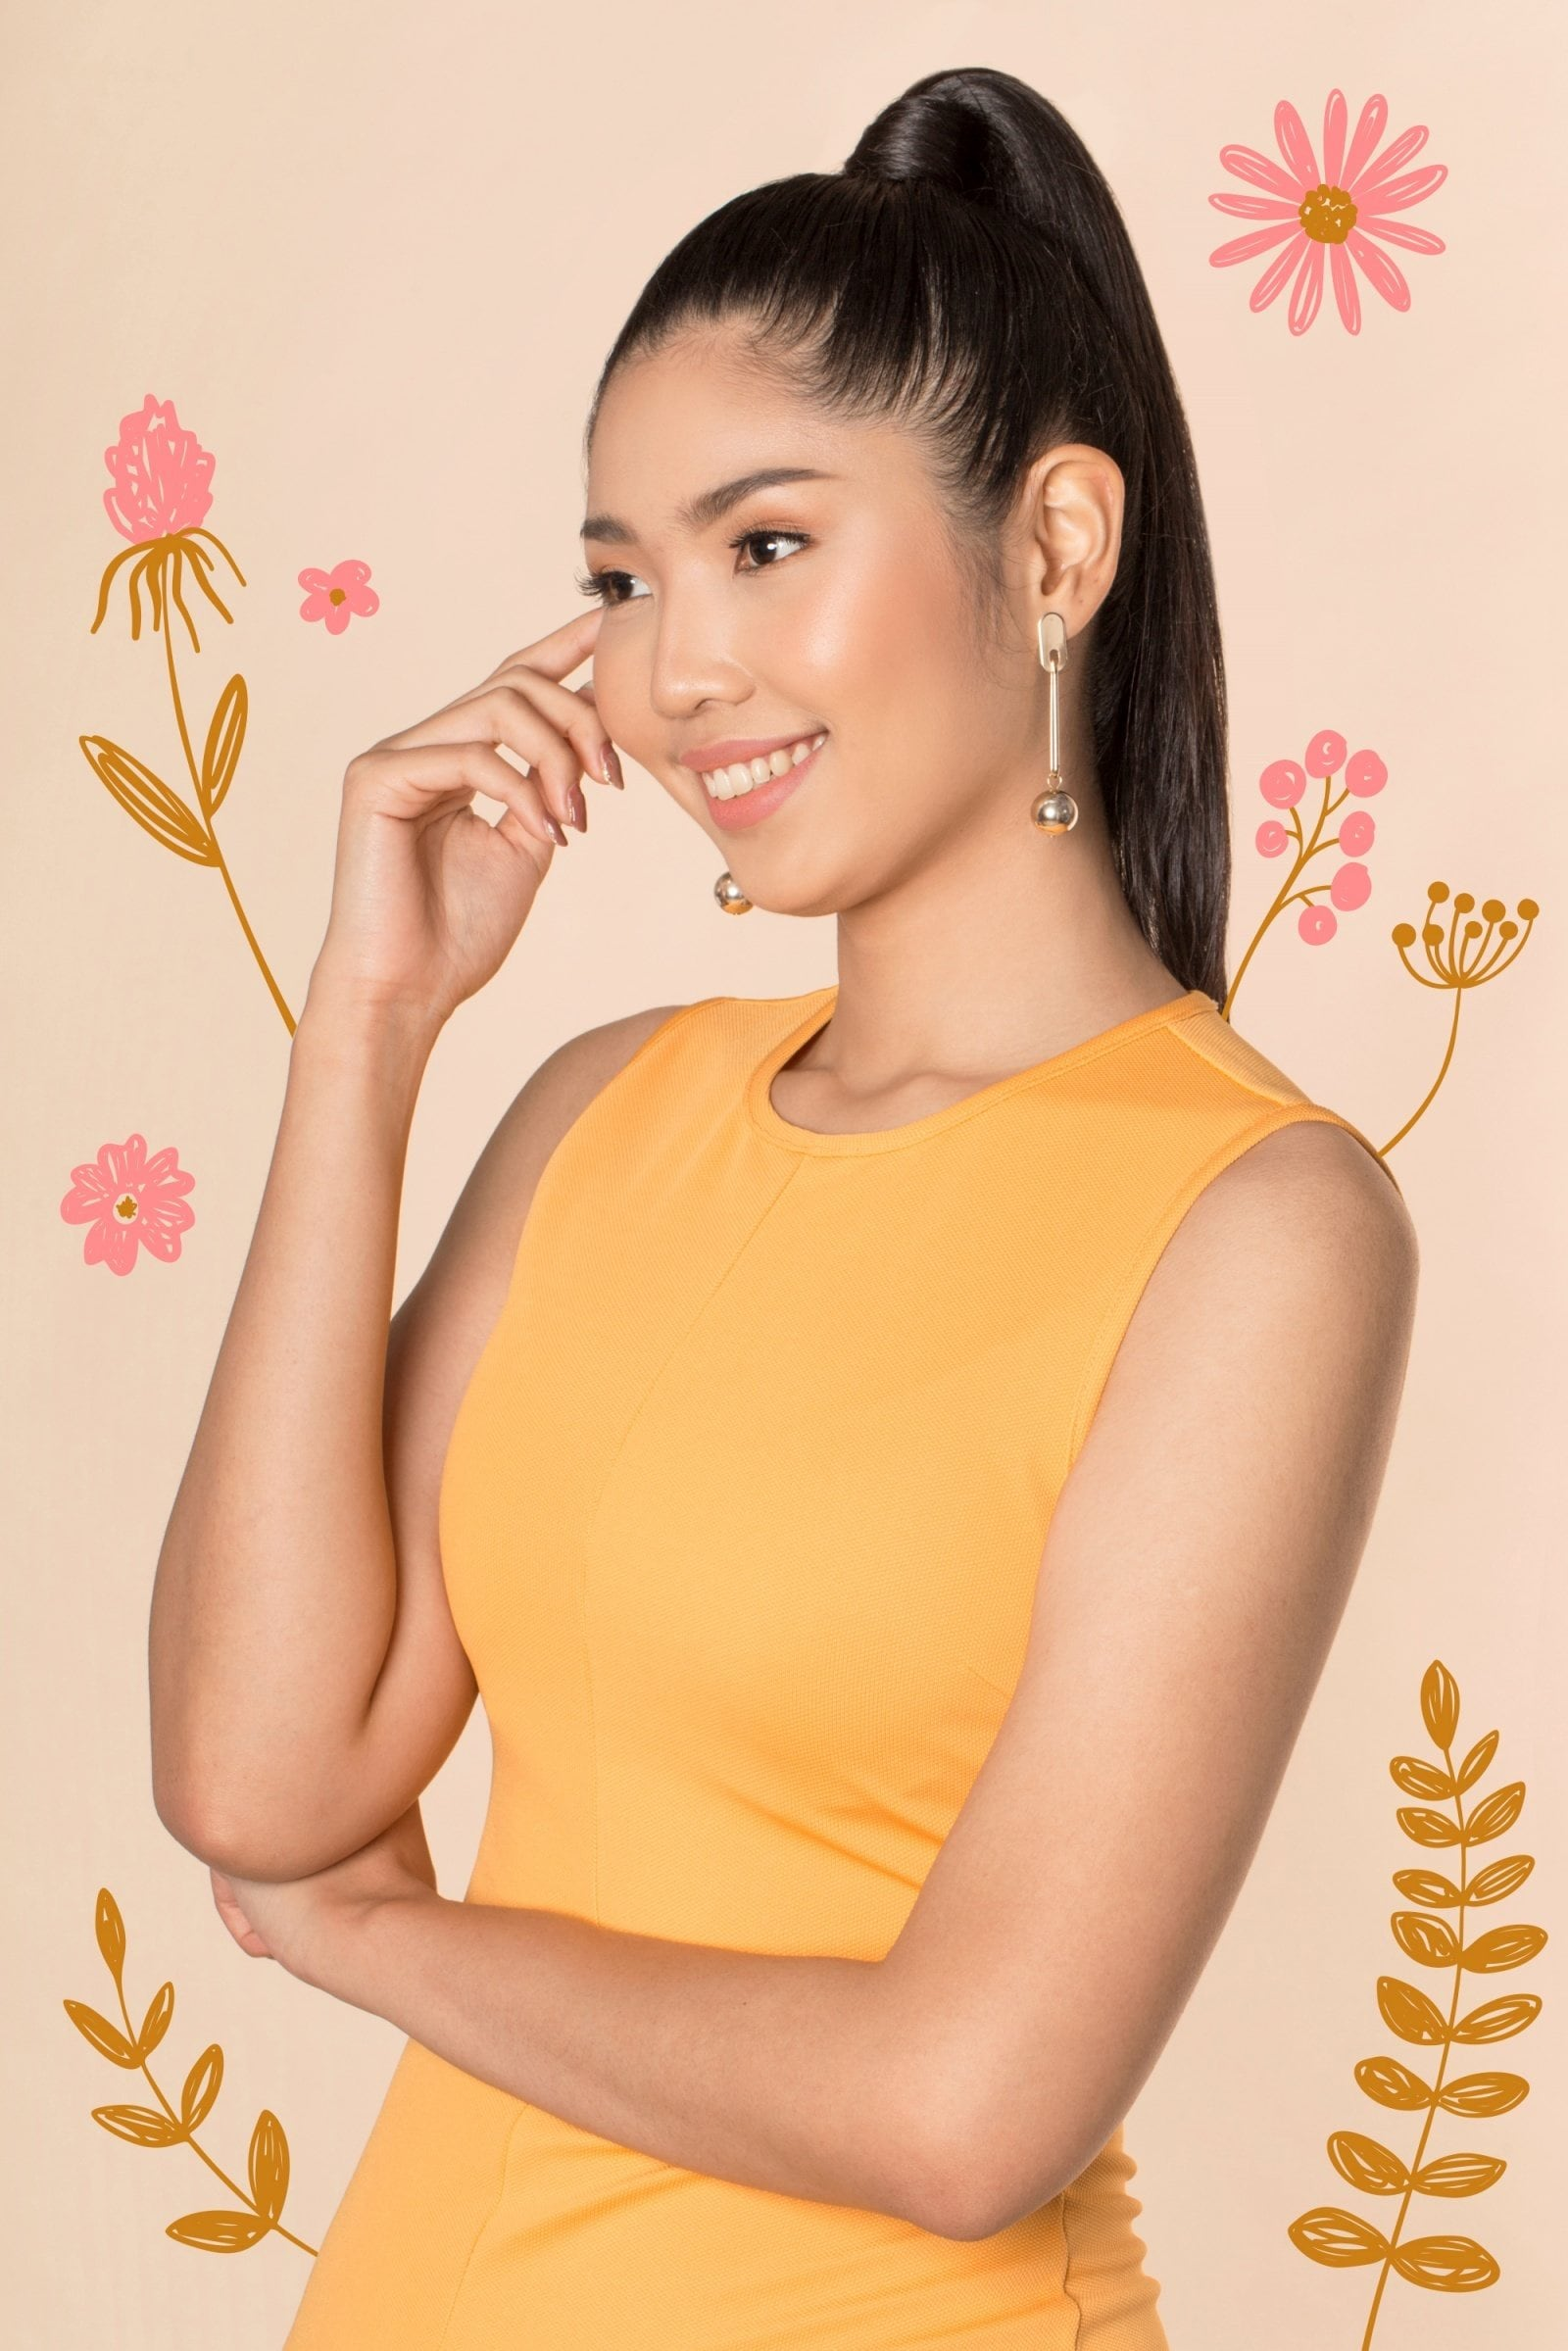 Flores de Mayo hairstyles: Asian woman with long black hair in high ponytail smiling